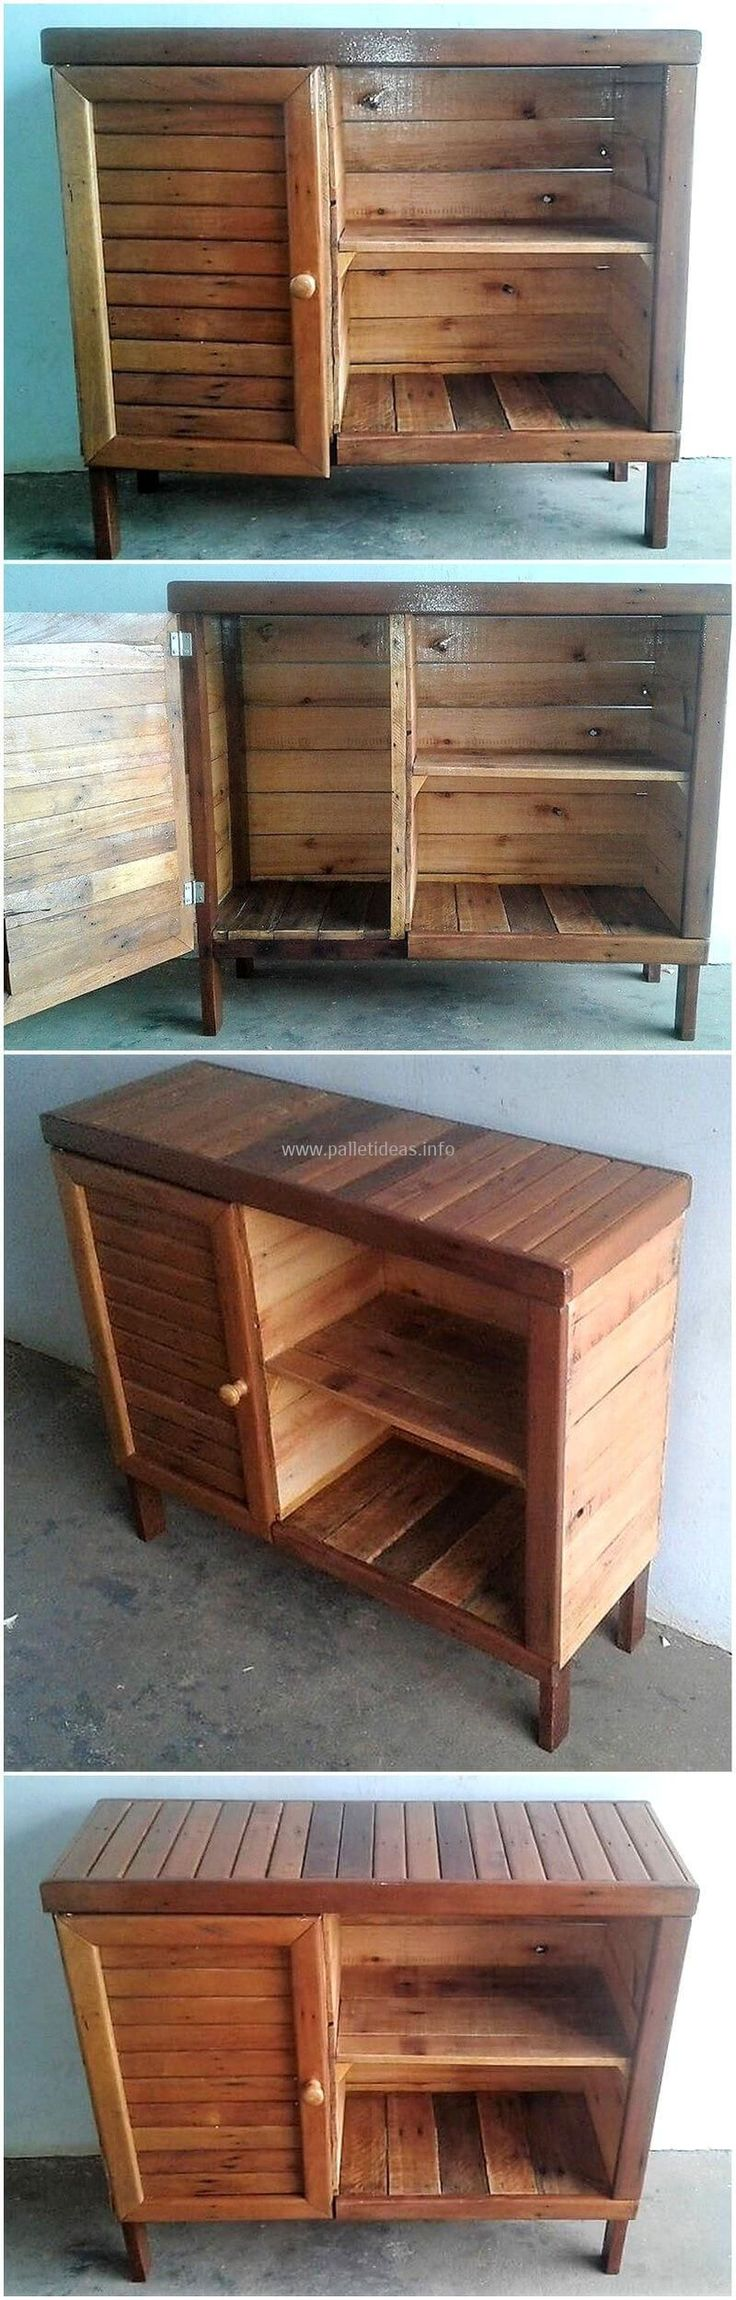 pallets wooden entryway table idea pallets woodpallet